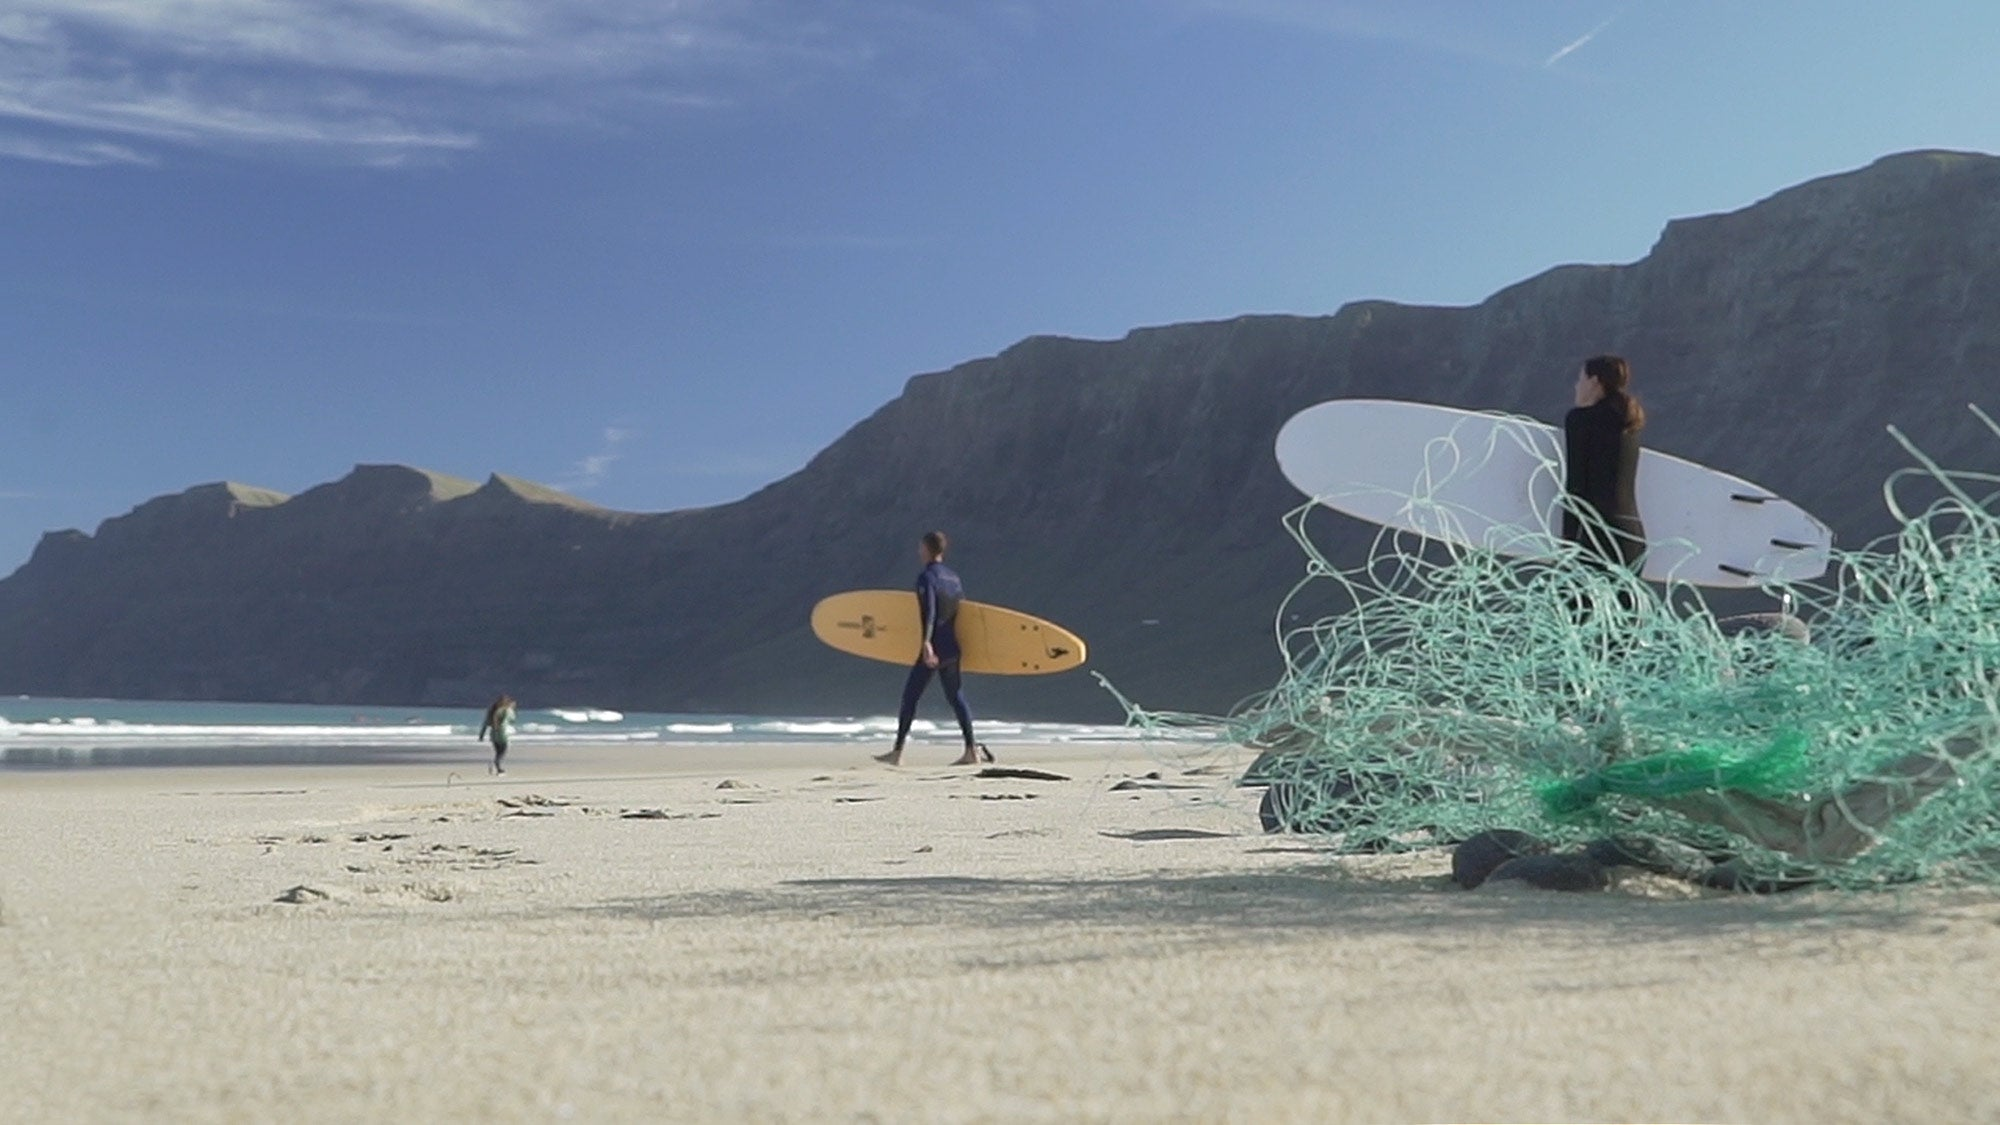 Surfers walking towards the waves, fishing nets in foreground